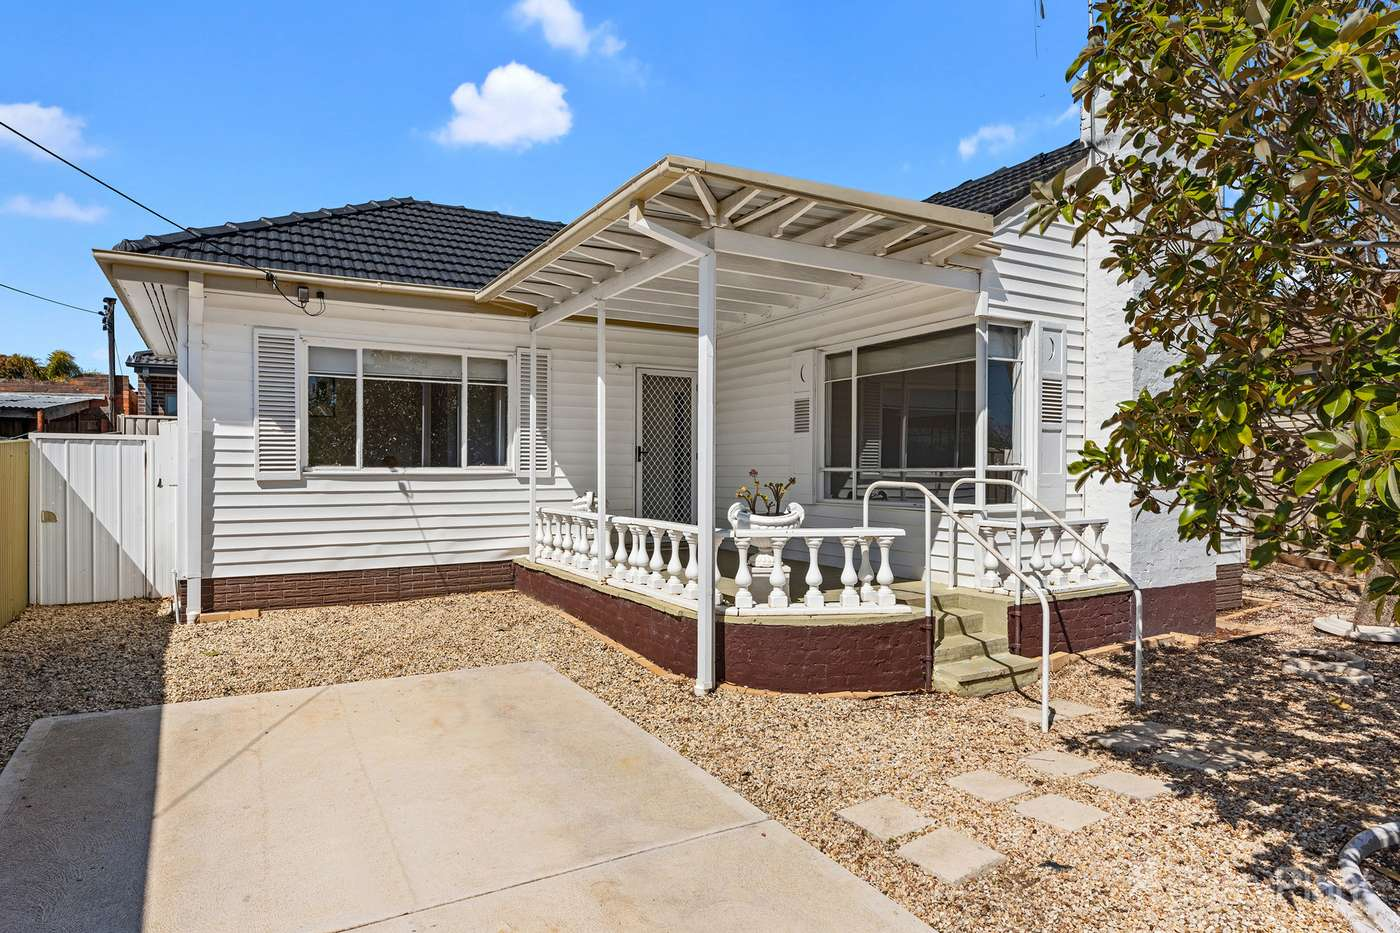 Main view of Homely house listing, 60 Smith Street, North Bendigo, VIC 3550